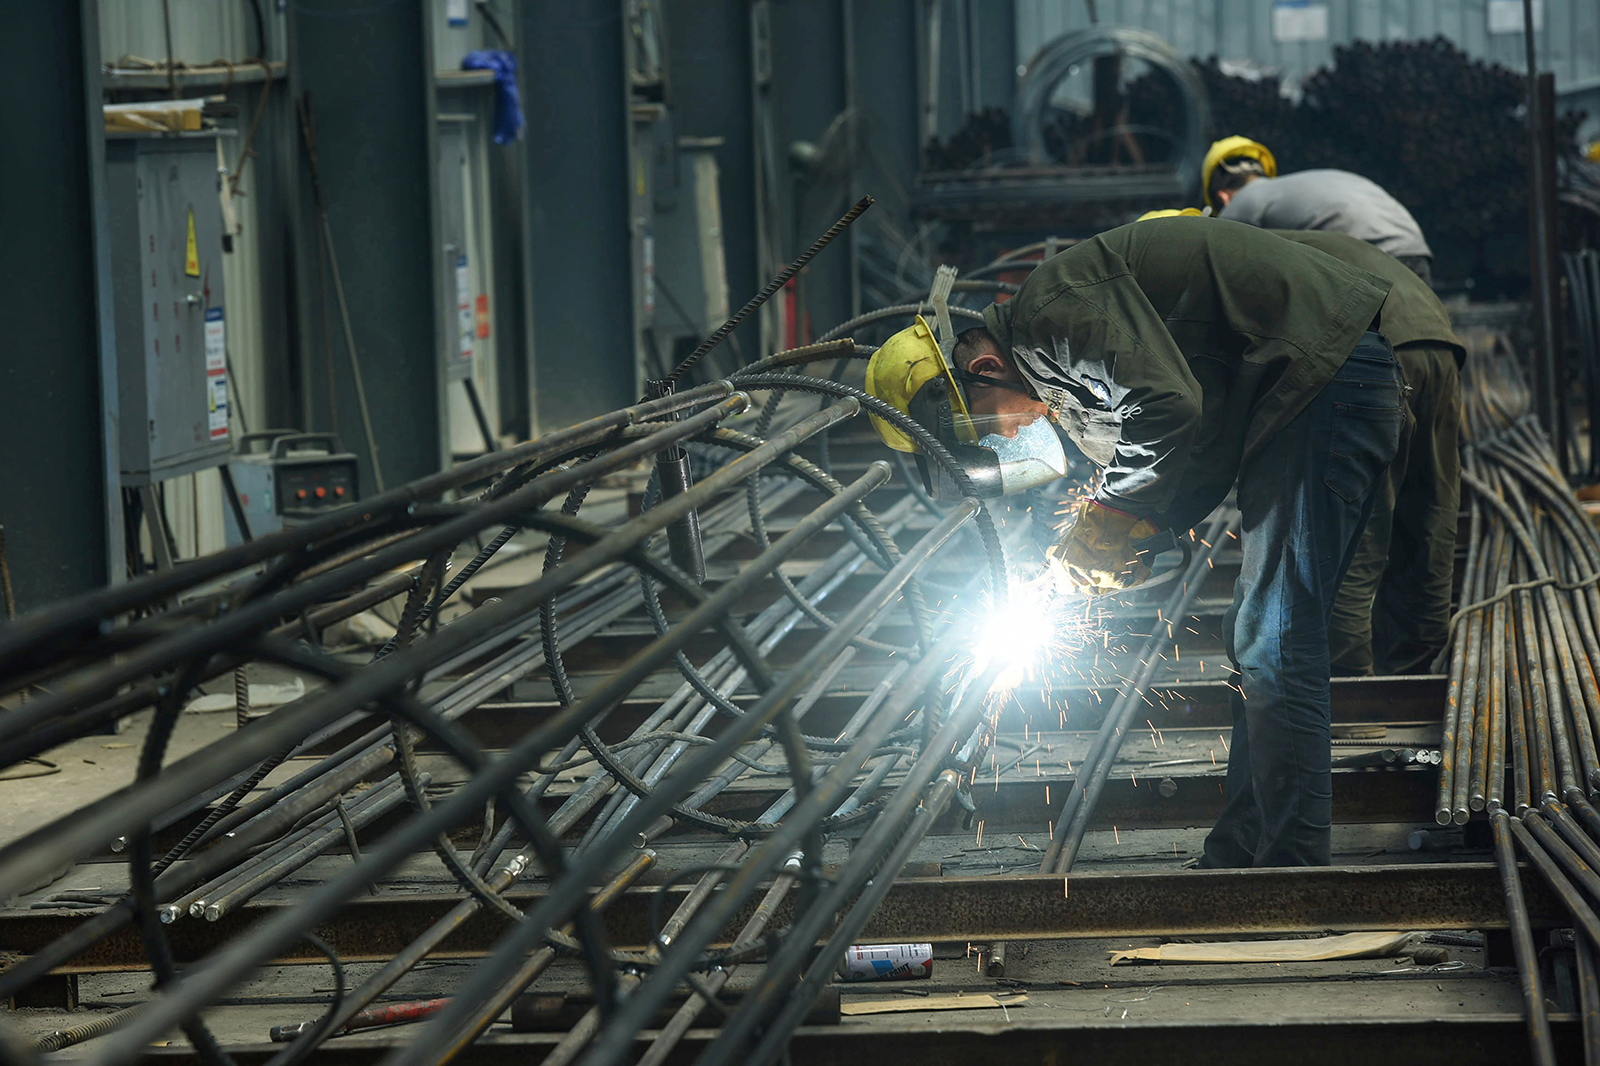 An employee works on steel bars at a factory in Hangzhou, in China's eastern Zhejiang province on May 15.